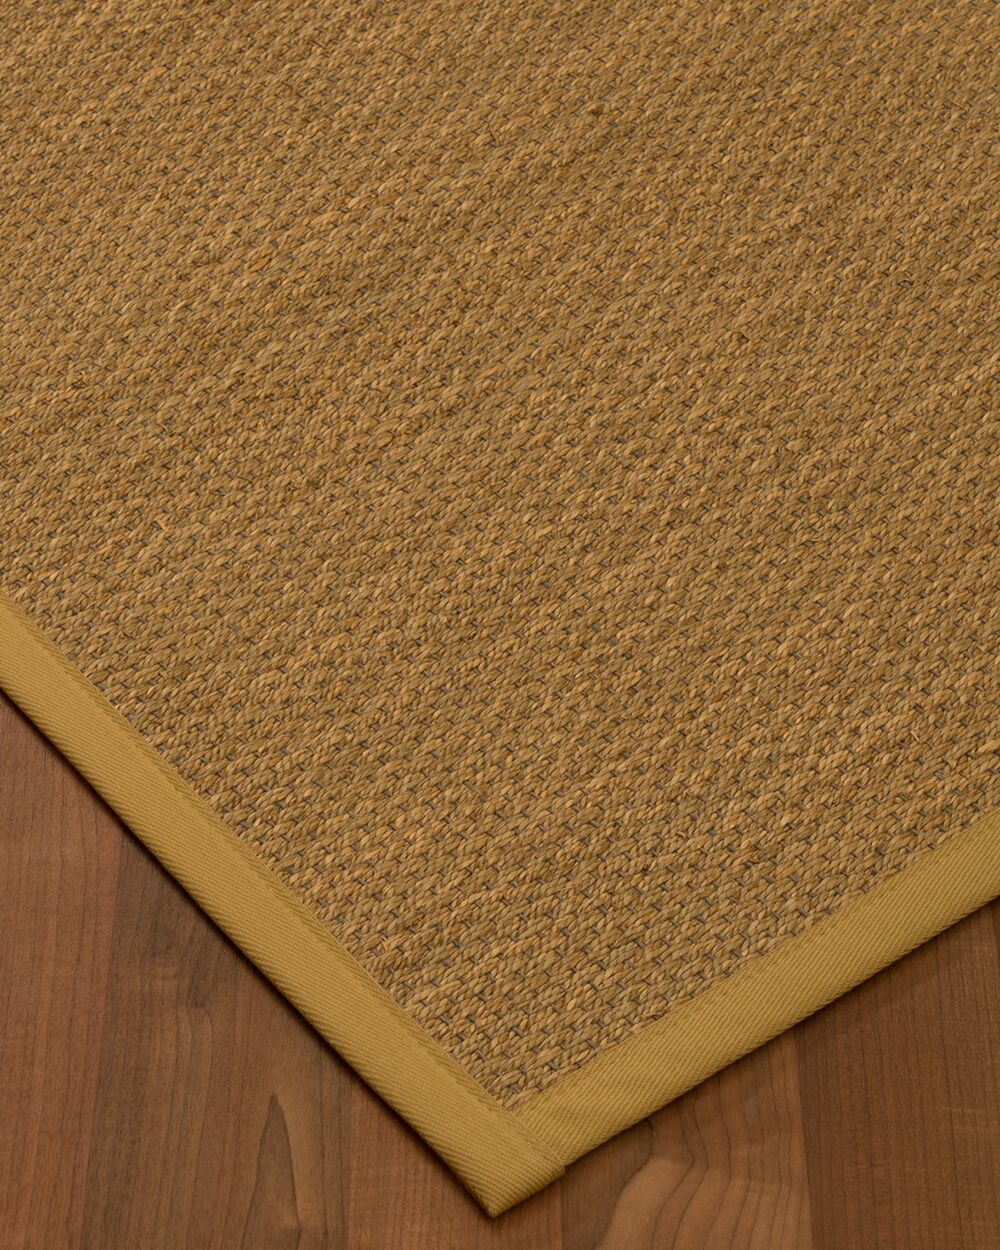 Chavis Border Hand-Woven Beige/Sage Area Rug Rug Size: Rectangle 5' x 8', Rug Pad Included: Yes